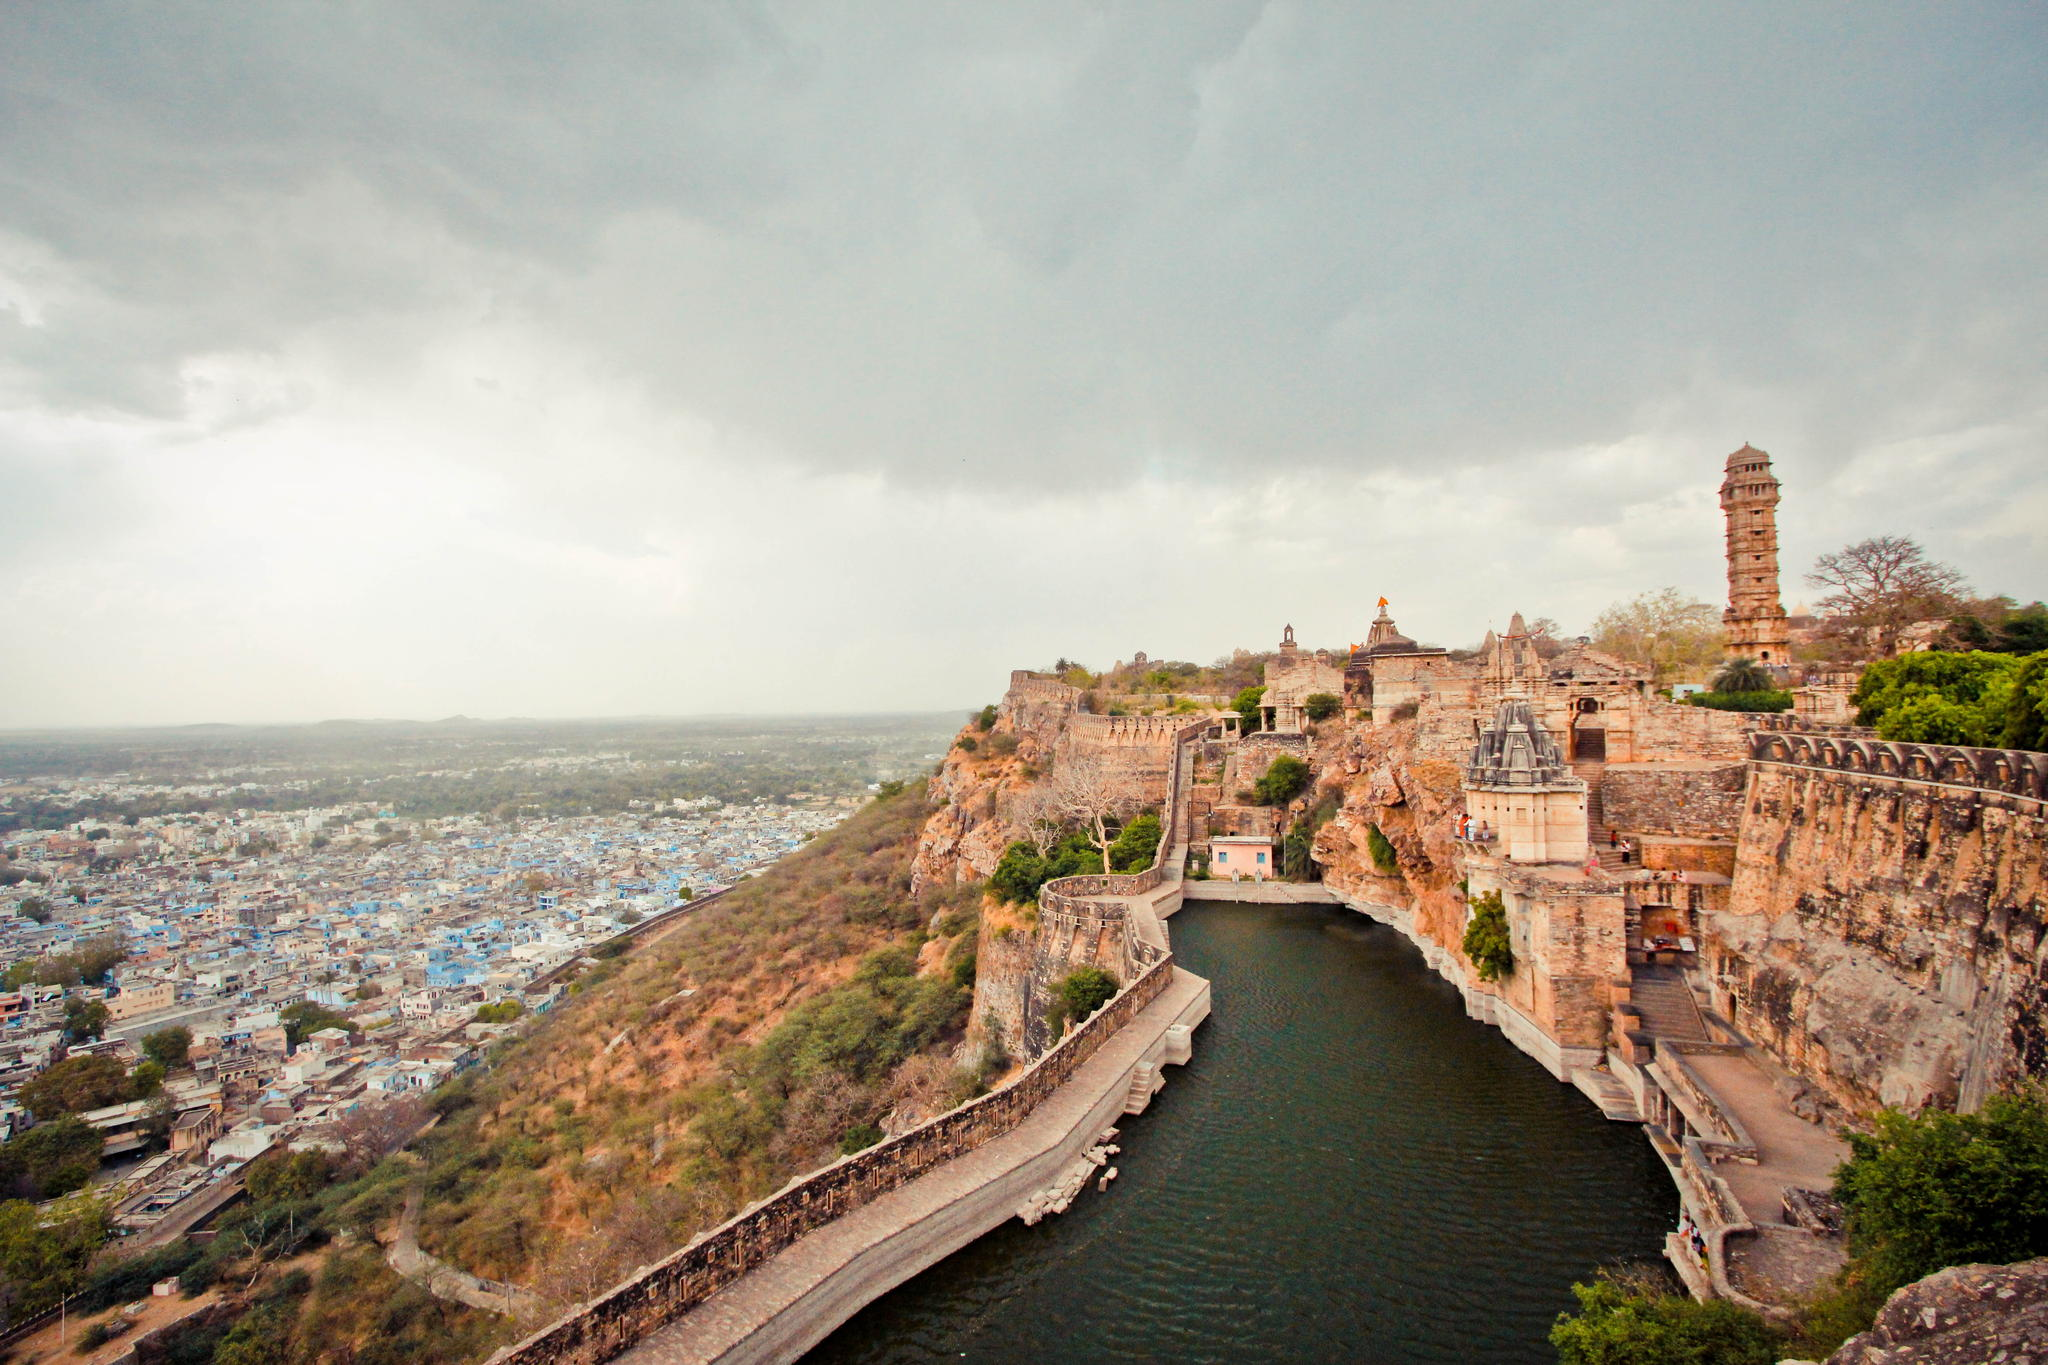 Chittorgarh Fort Biggest Fortress India - Gets Ready